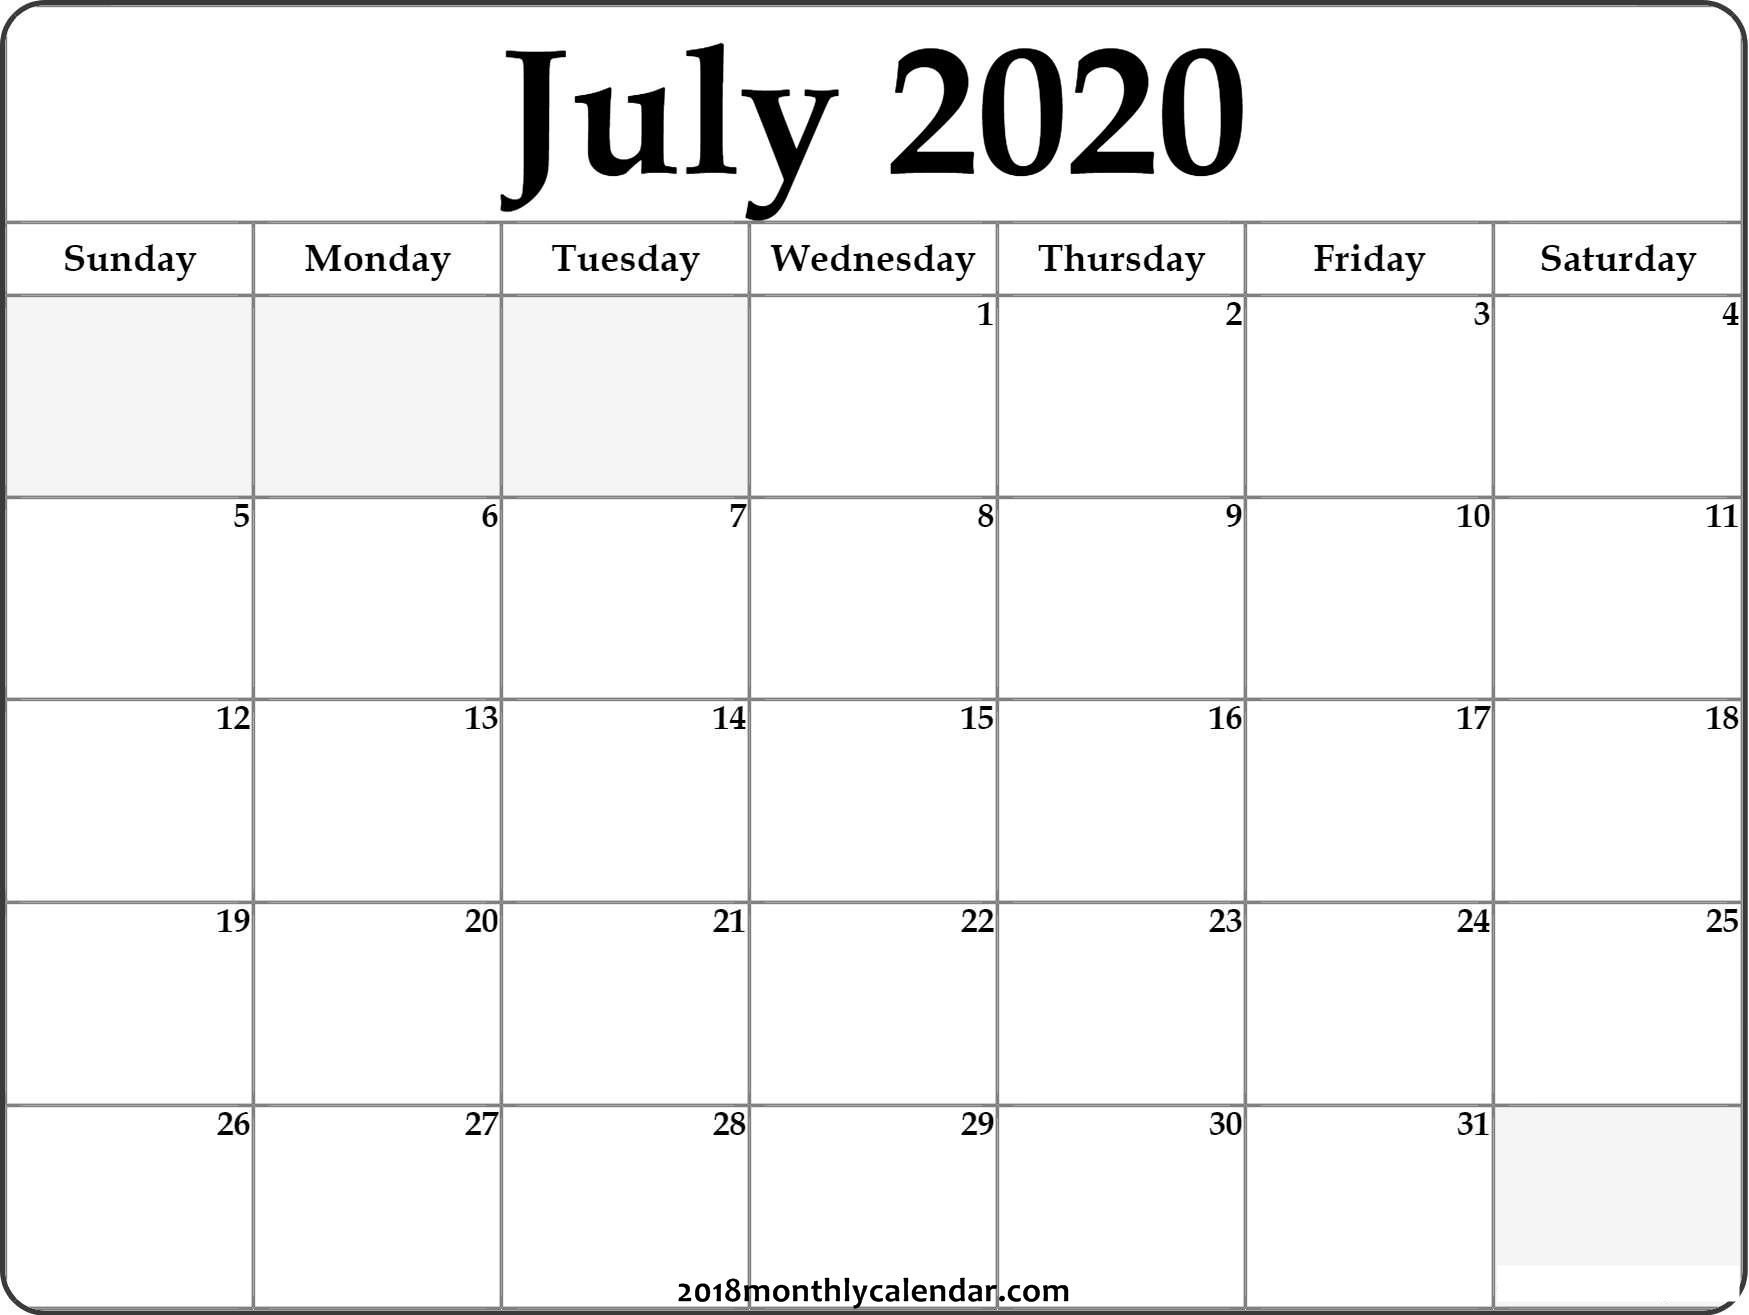 Download July 2020 Printable Calendar_Blank Calendar For July 2020